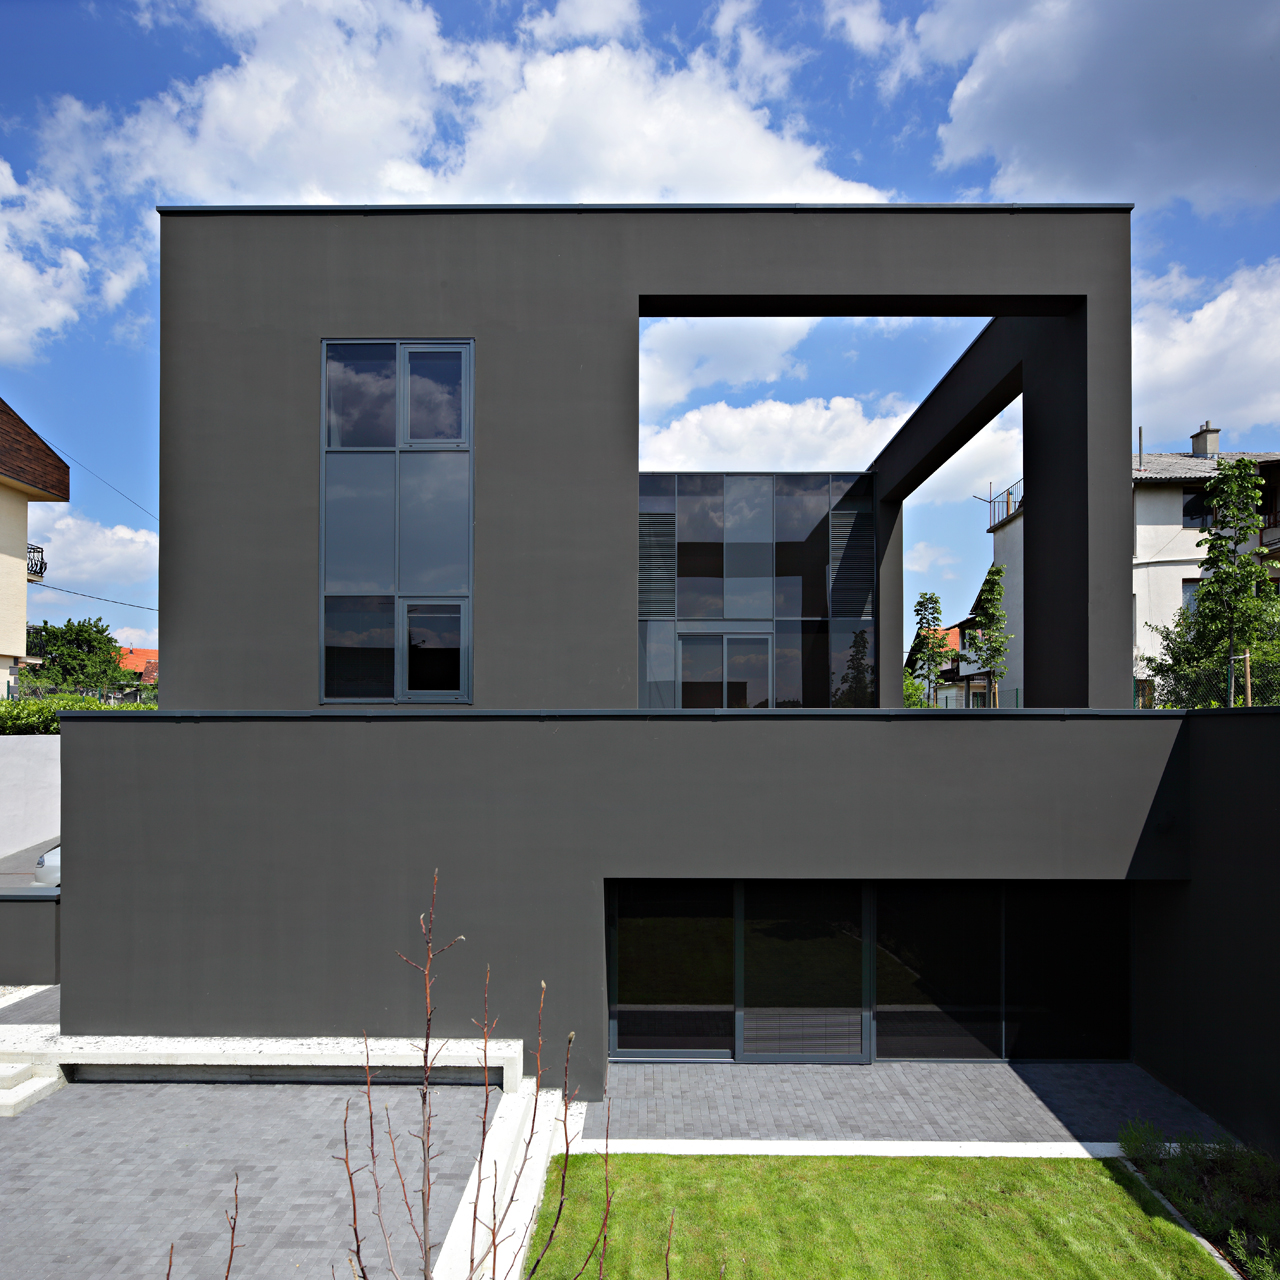 Gallery of black house dva arhitekta 5 for Casas pintadas exterior